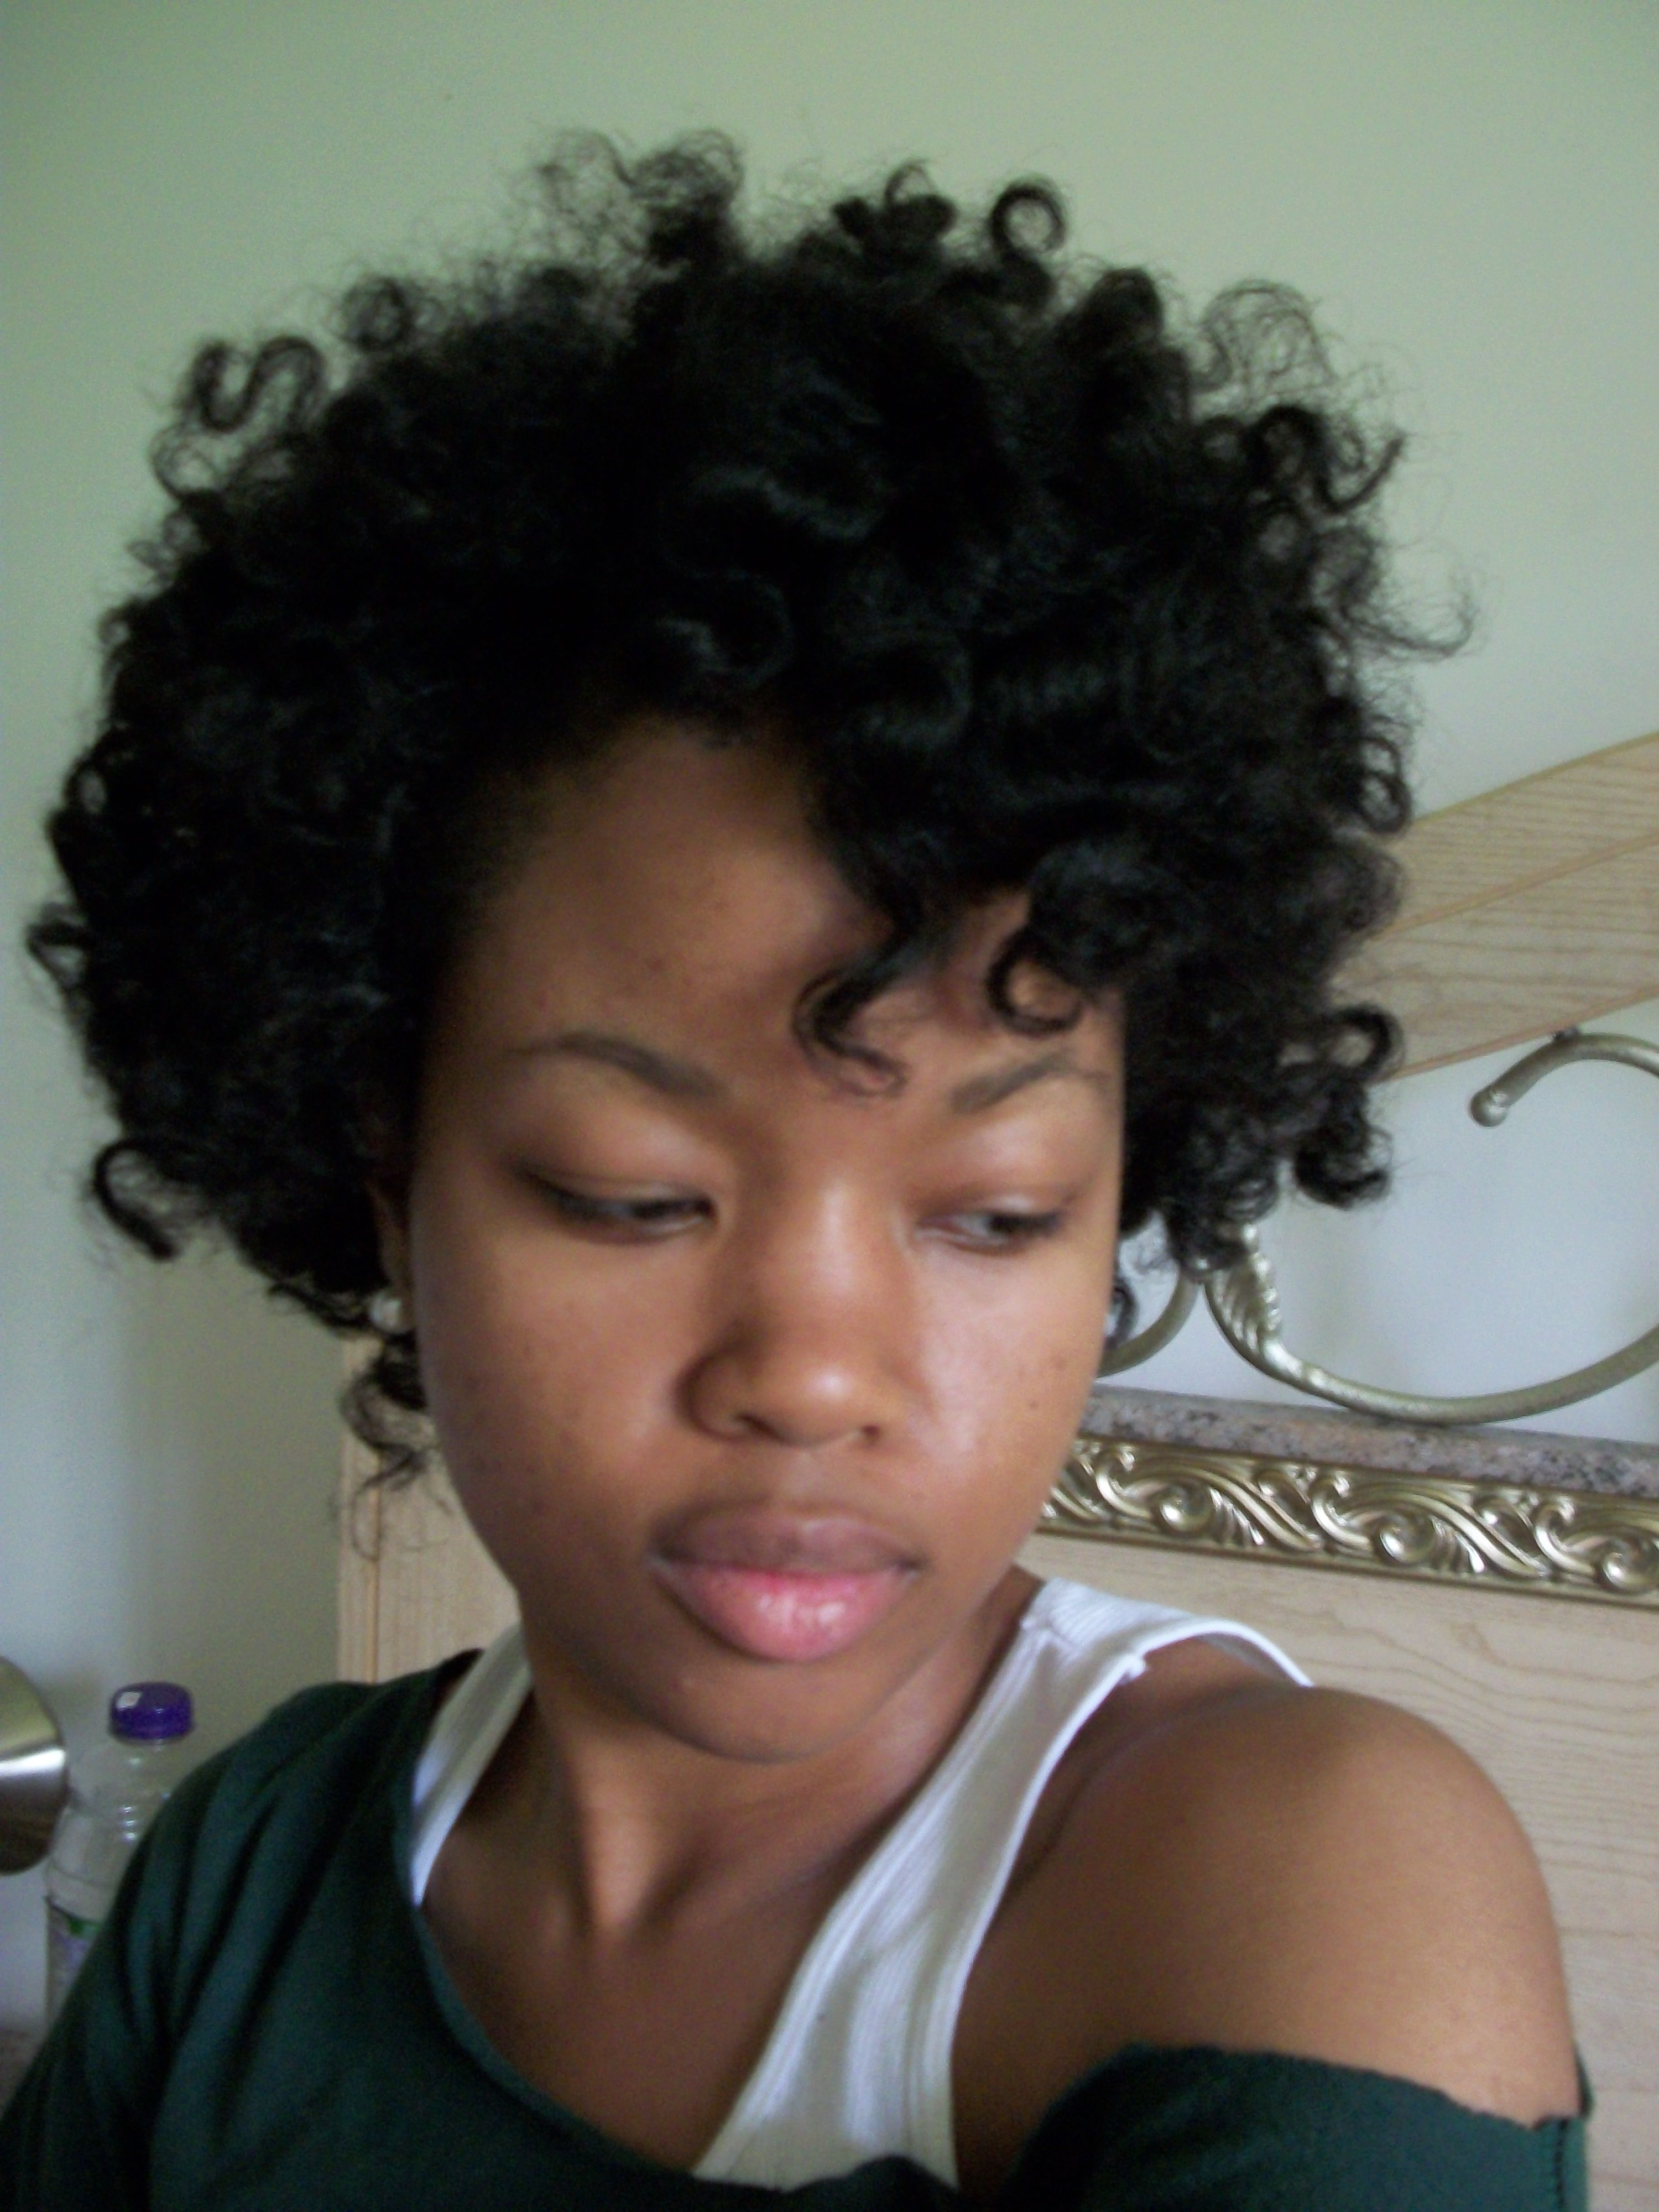 Black Wavy Hairstyles Curly Hairstyles For Black Women 2011